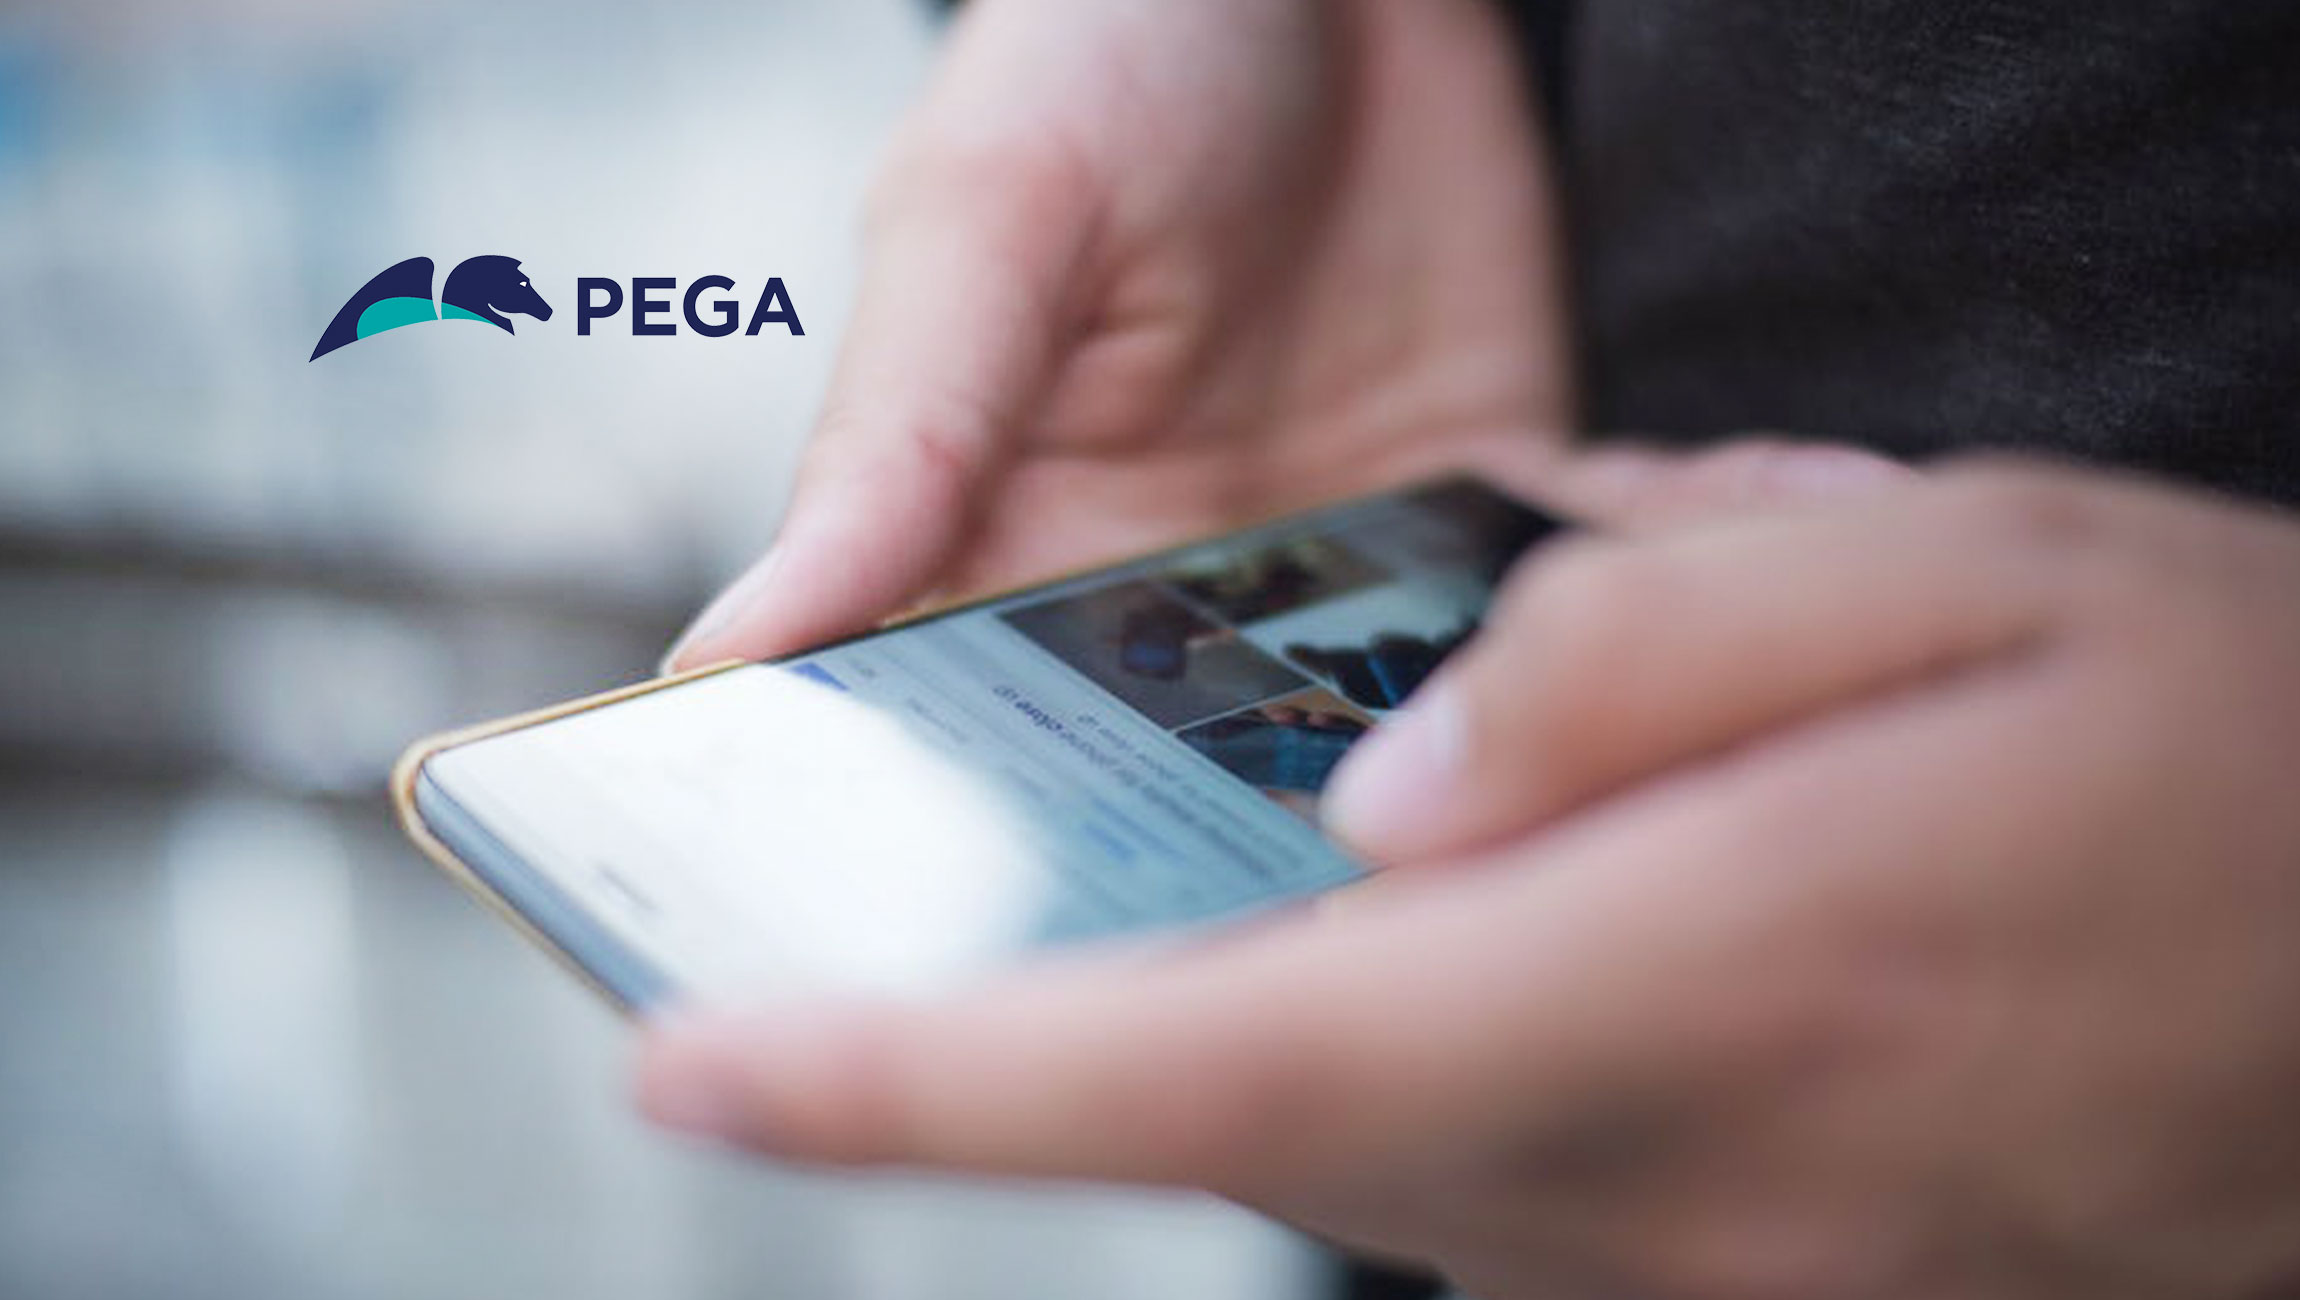 LinkedIn Sales Navigator and Matched Audiences to Integrate with Pega CRM